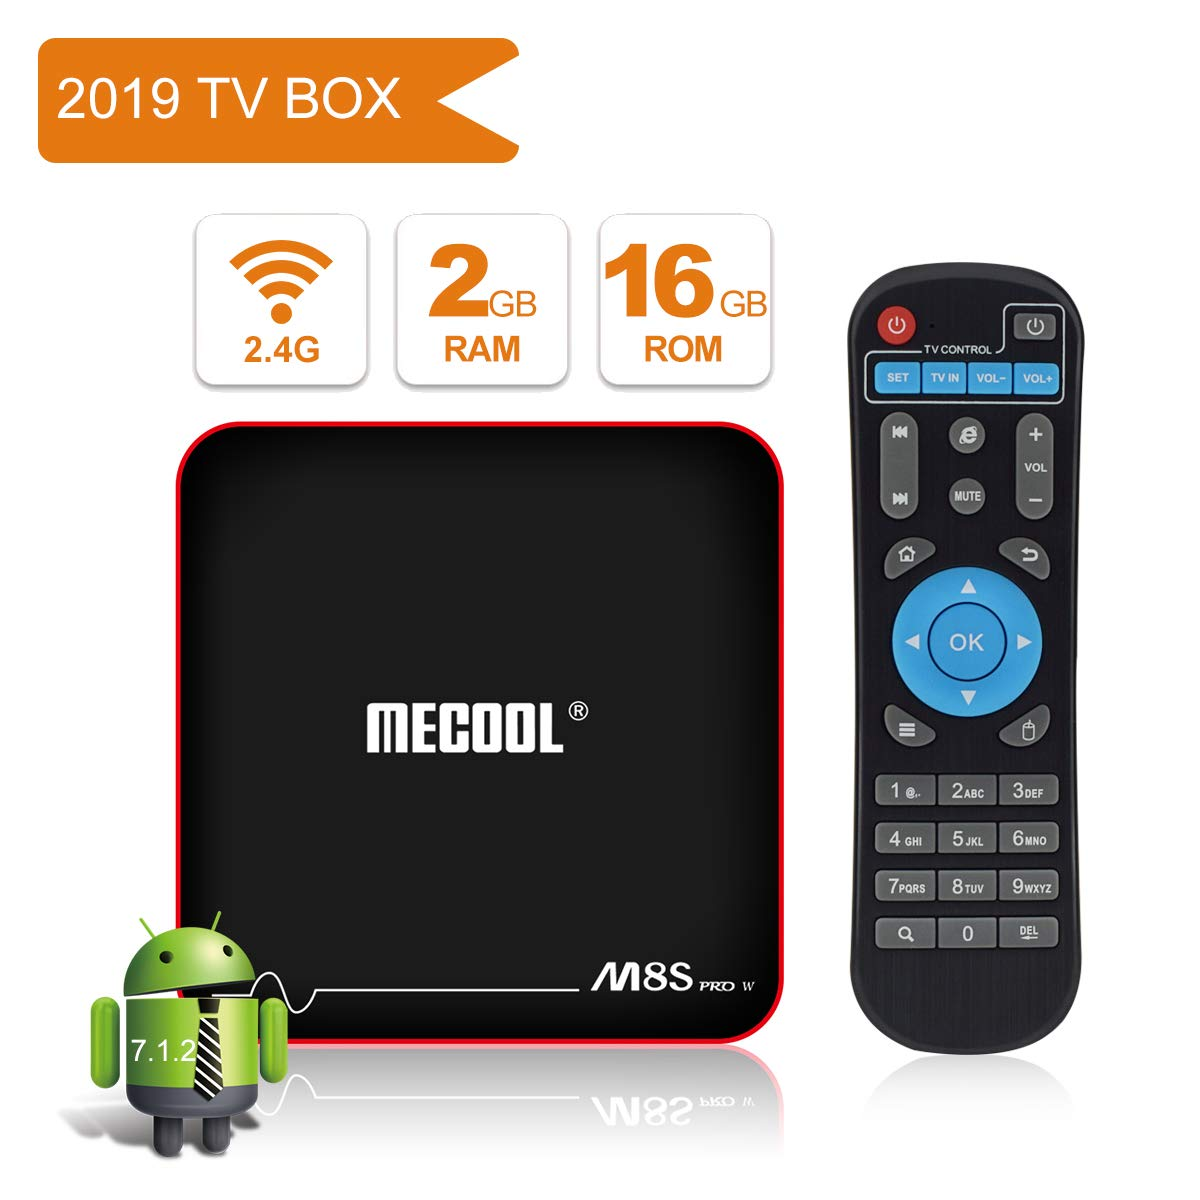 MECOOL M8S Pro W TV Box Android 7.1.2 with 2GB RAM/16GB ROM Amlogic S905W Quad Core, Best Android UI,HD 4K Internet Media Players